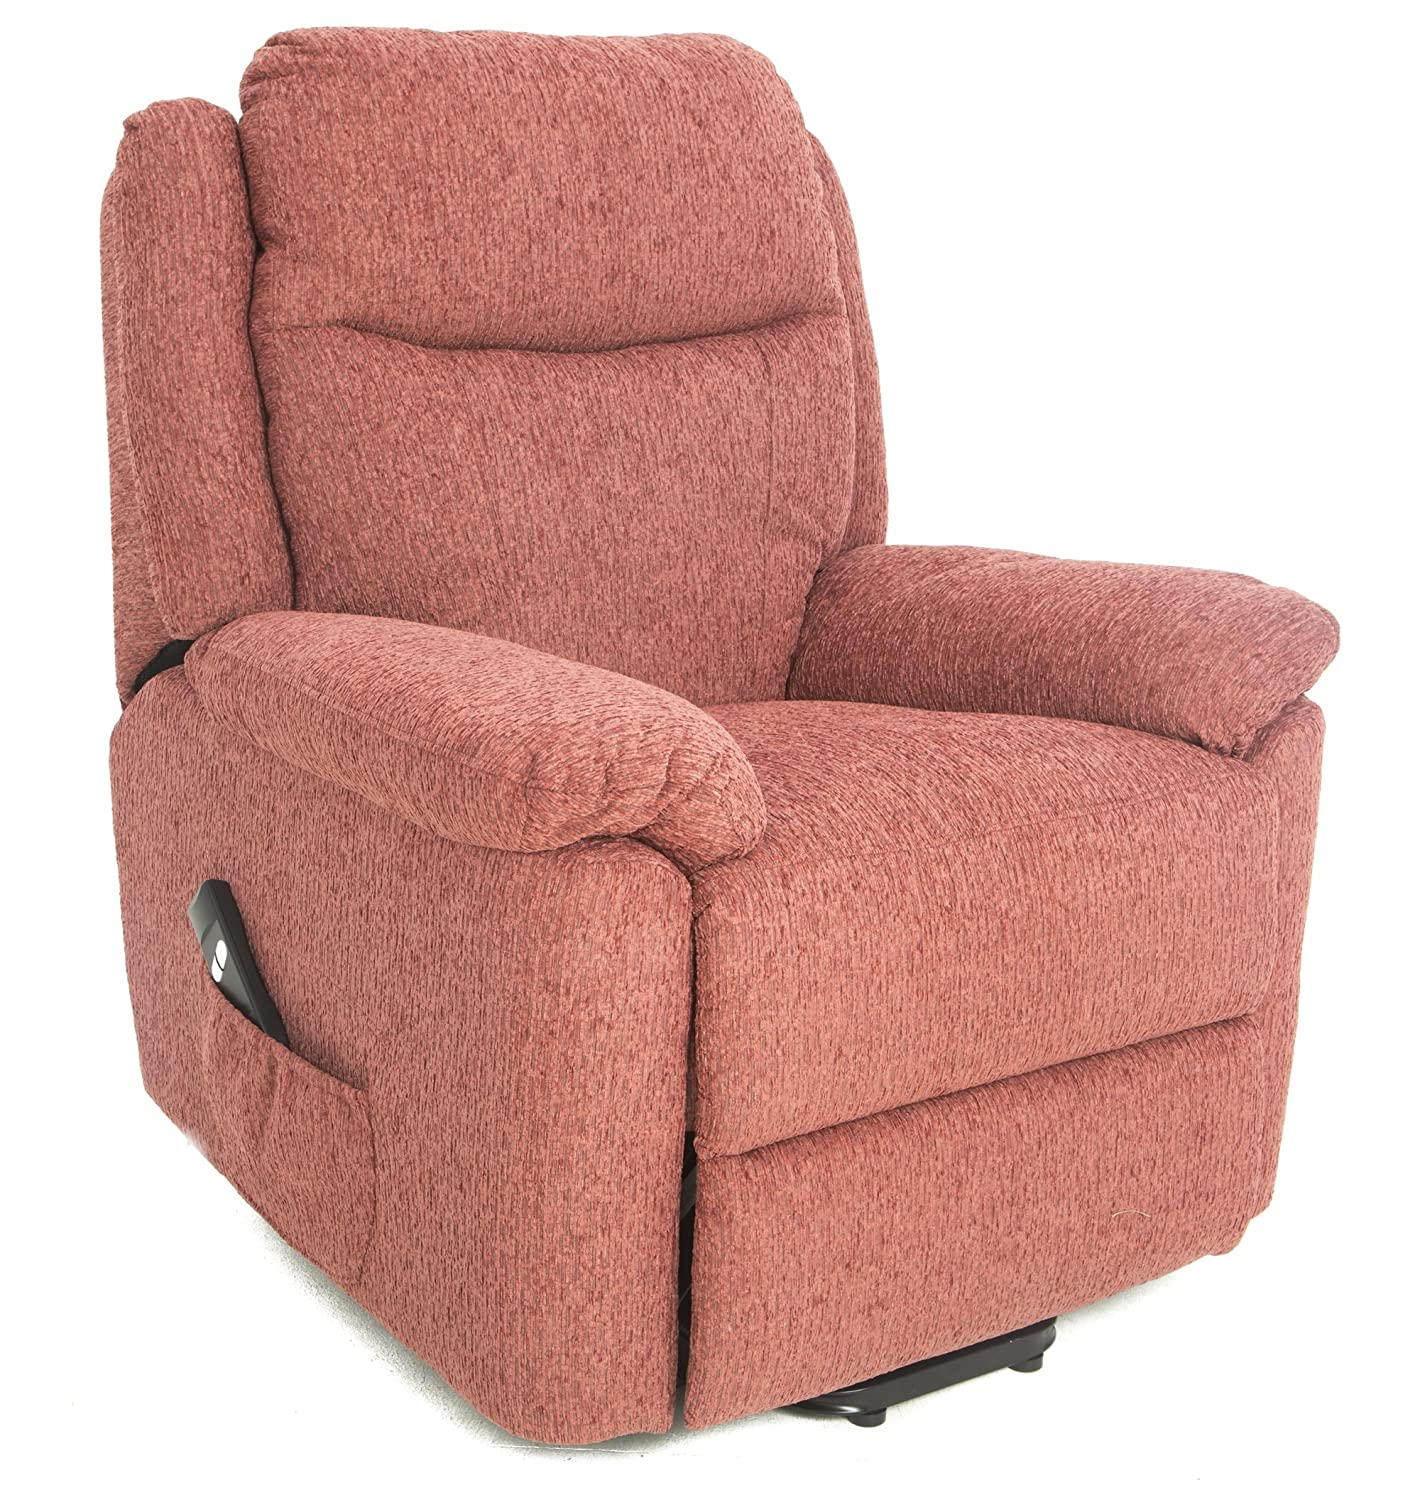 The Oxford Riser Recliner Lift and Tilt Chair in choice of